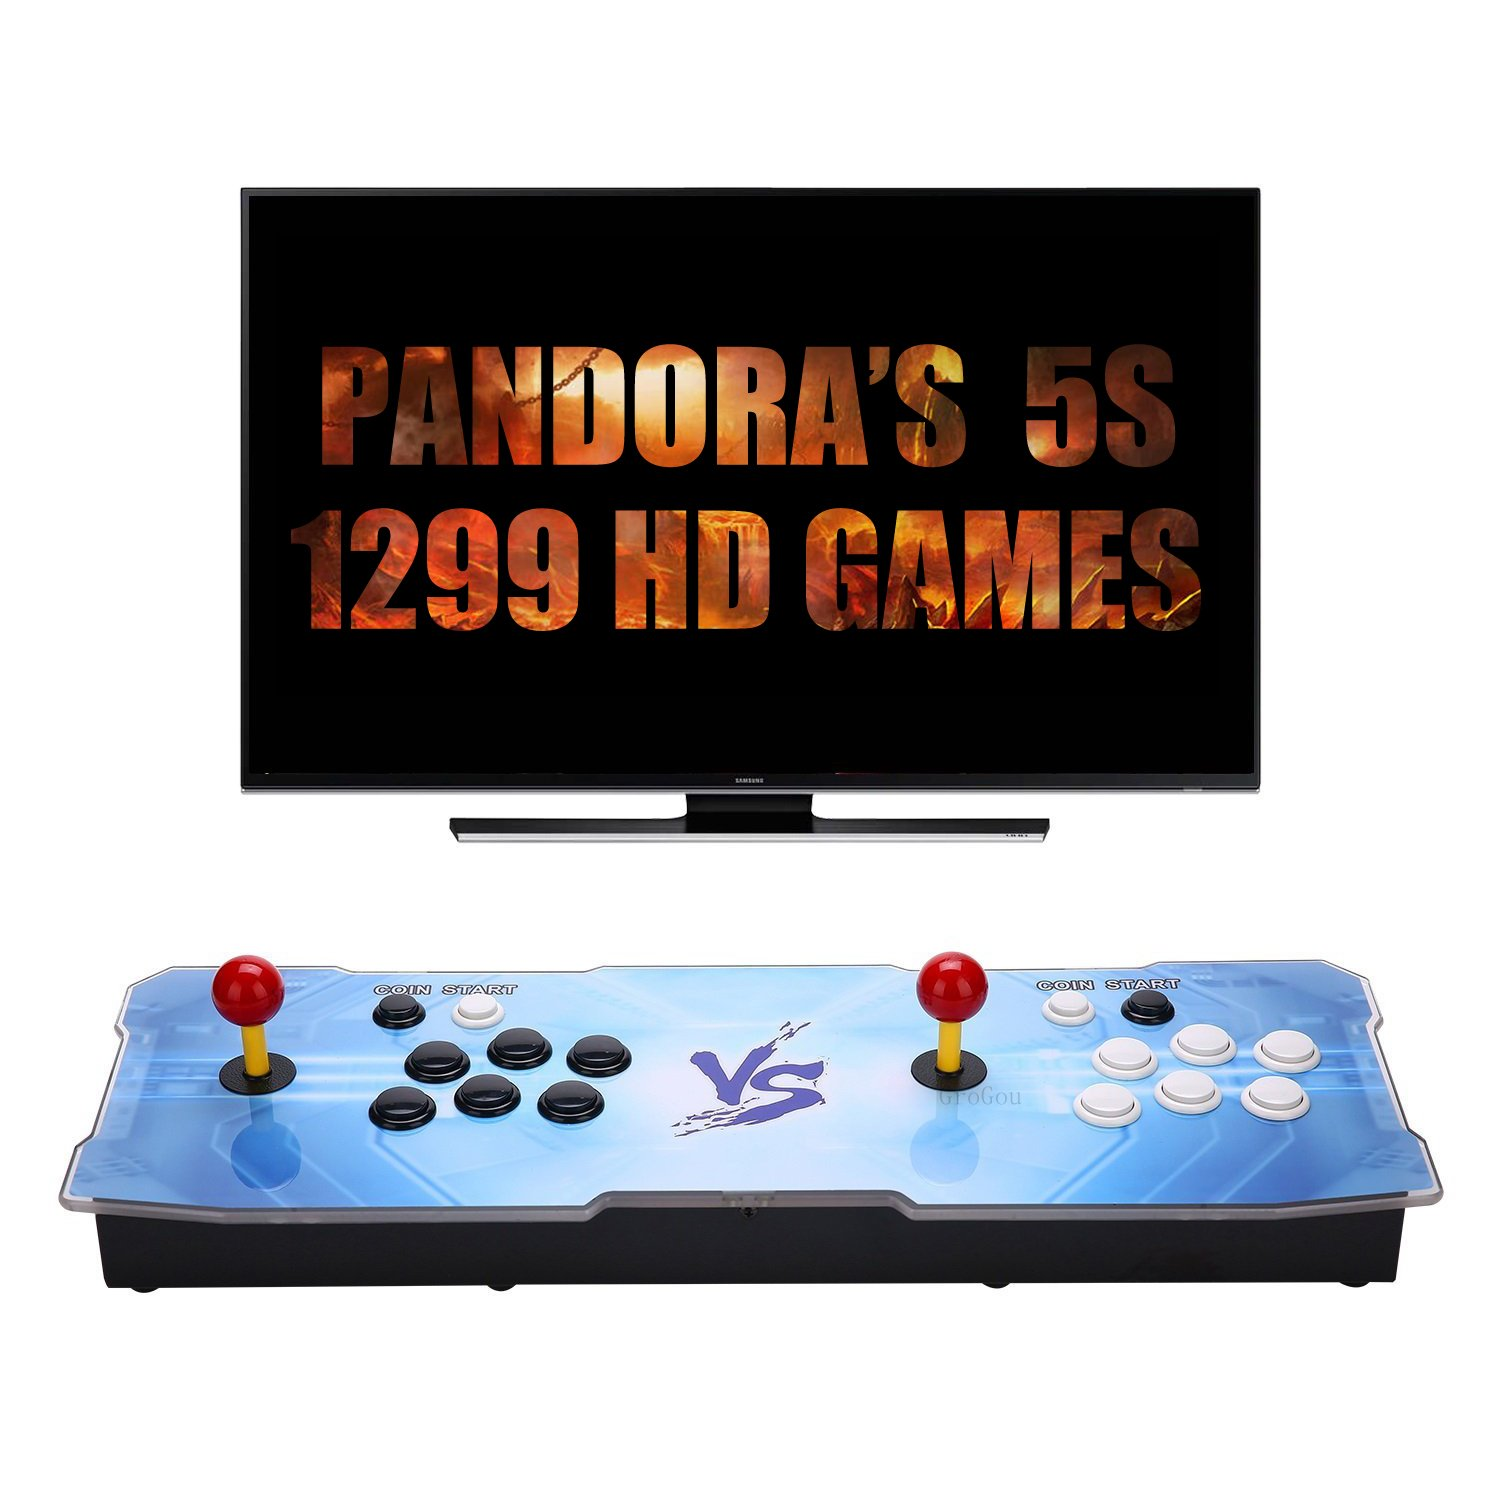 Pandora Arcade Game with joy-pad